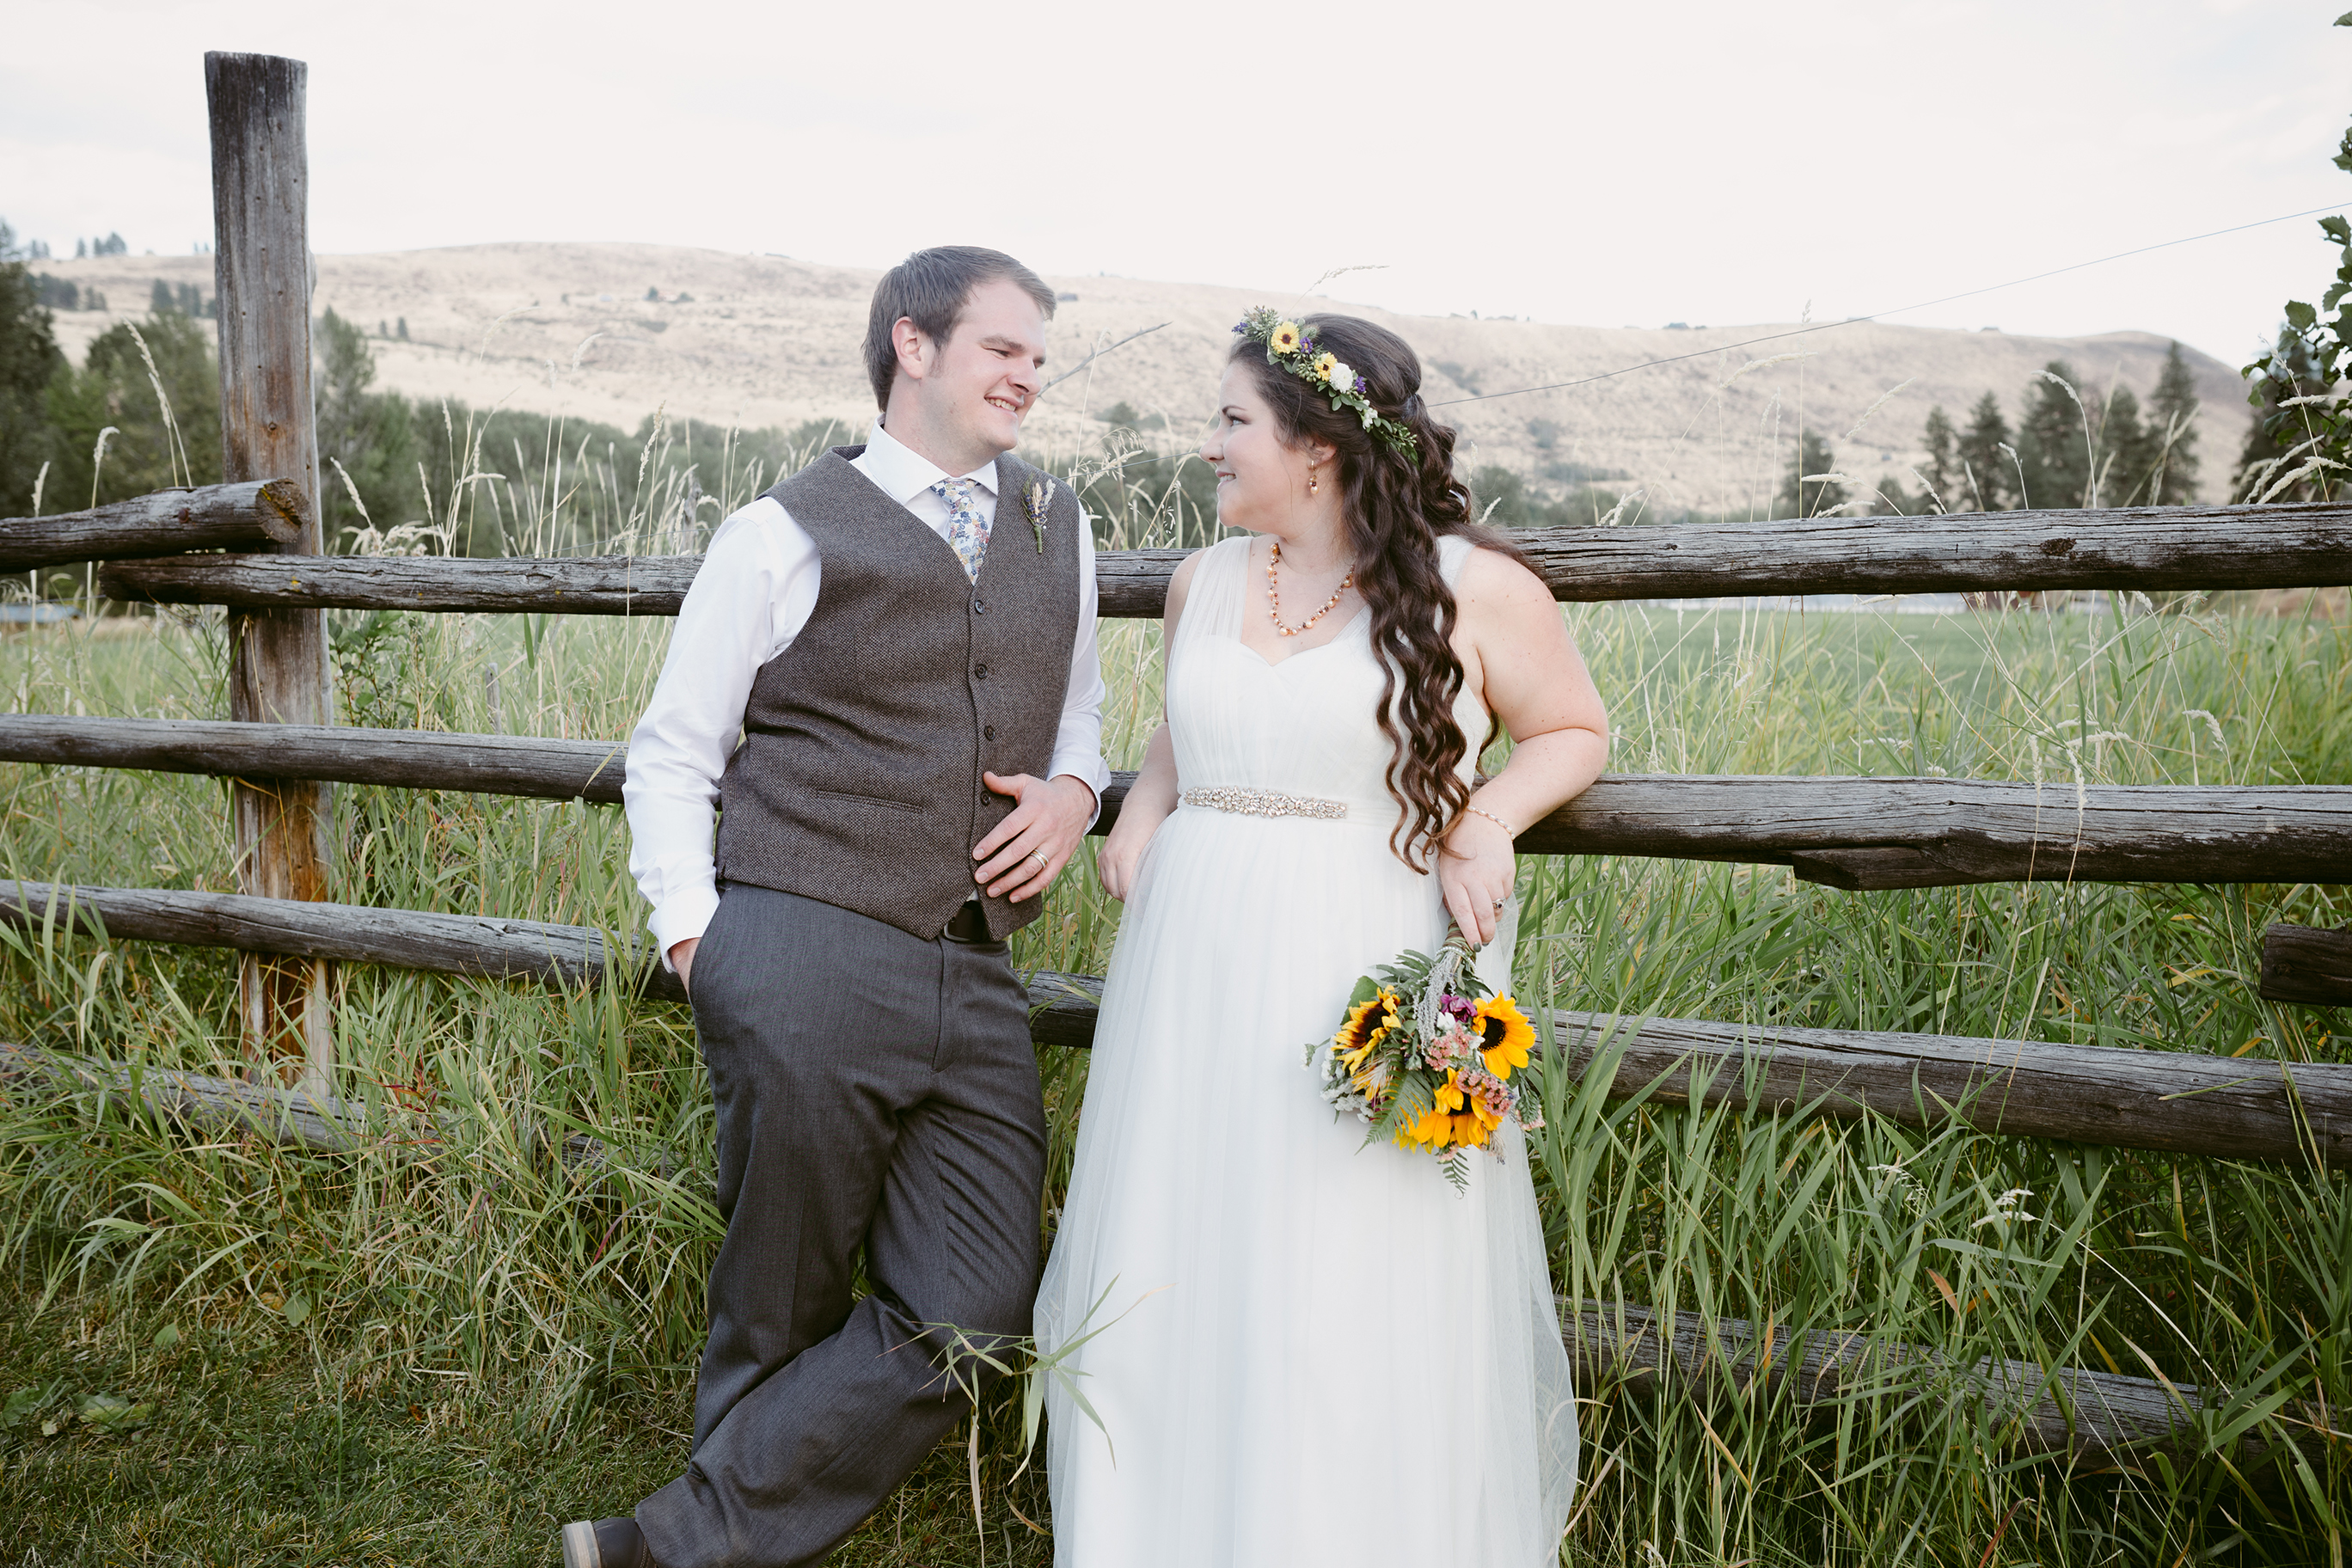 Bride and Groom on Fence Spring Creek Ranch Methow Valley